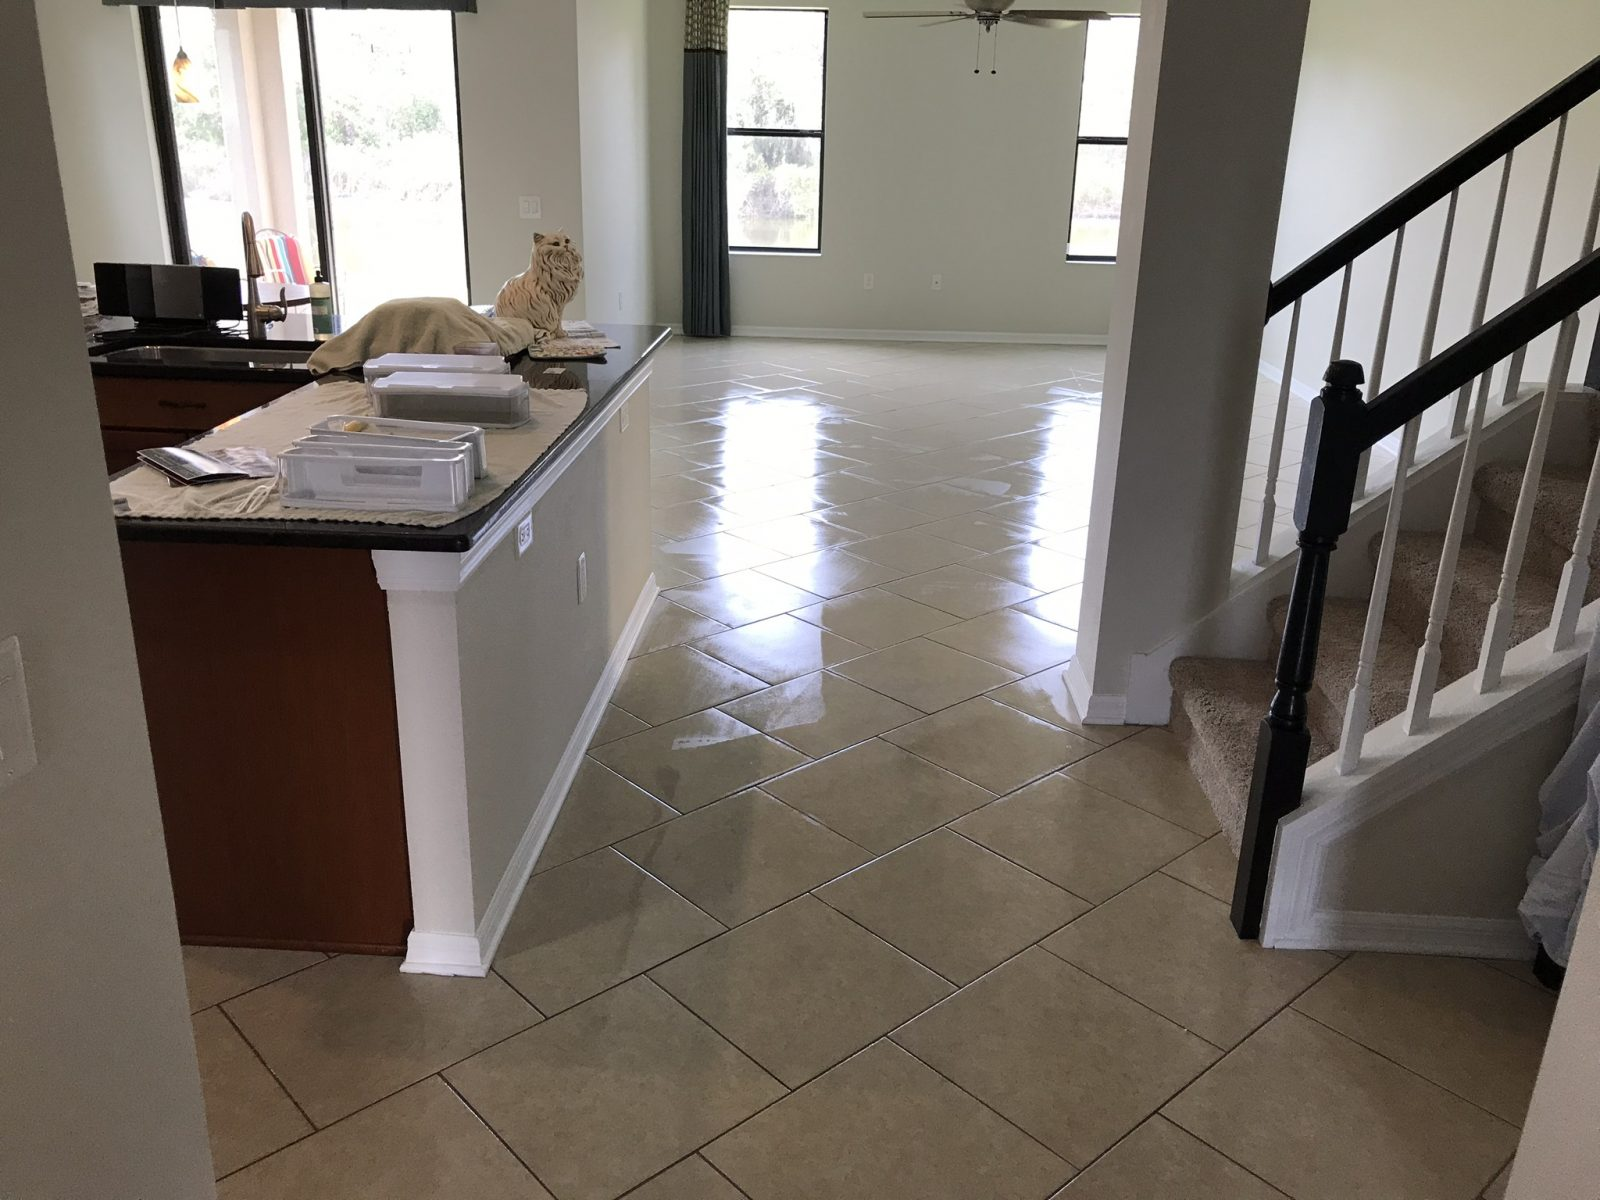 Professional Tile & Grout Cleaning Dunedin Florida by Howards Cleaning Service